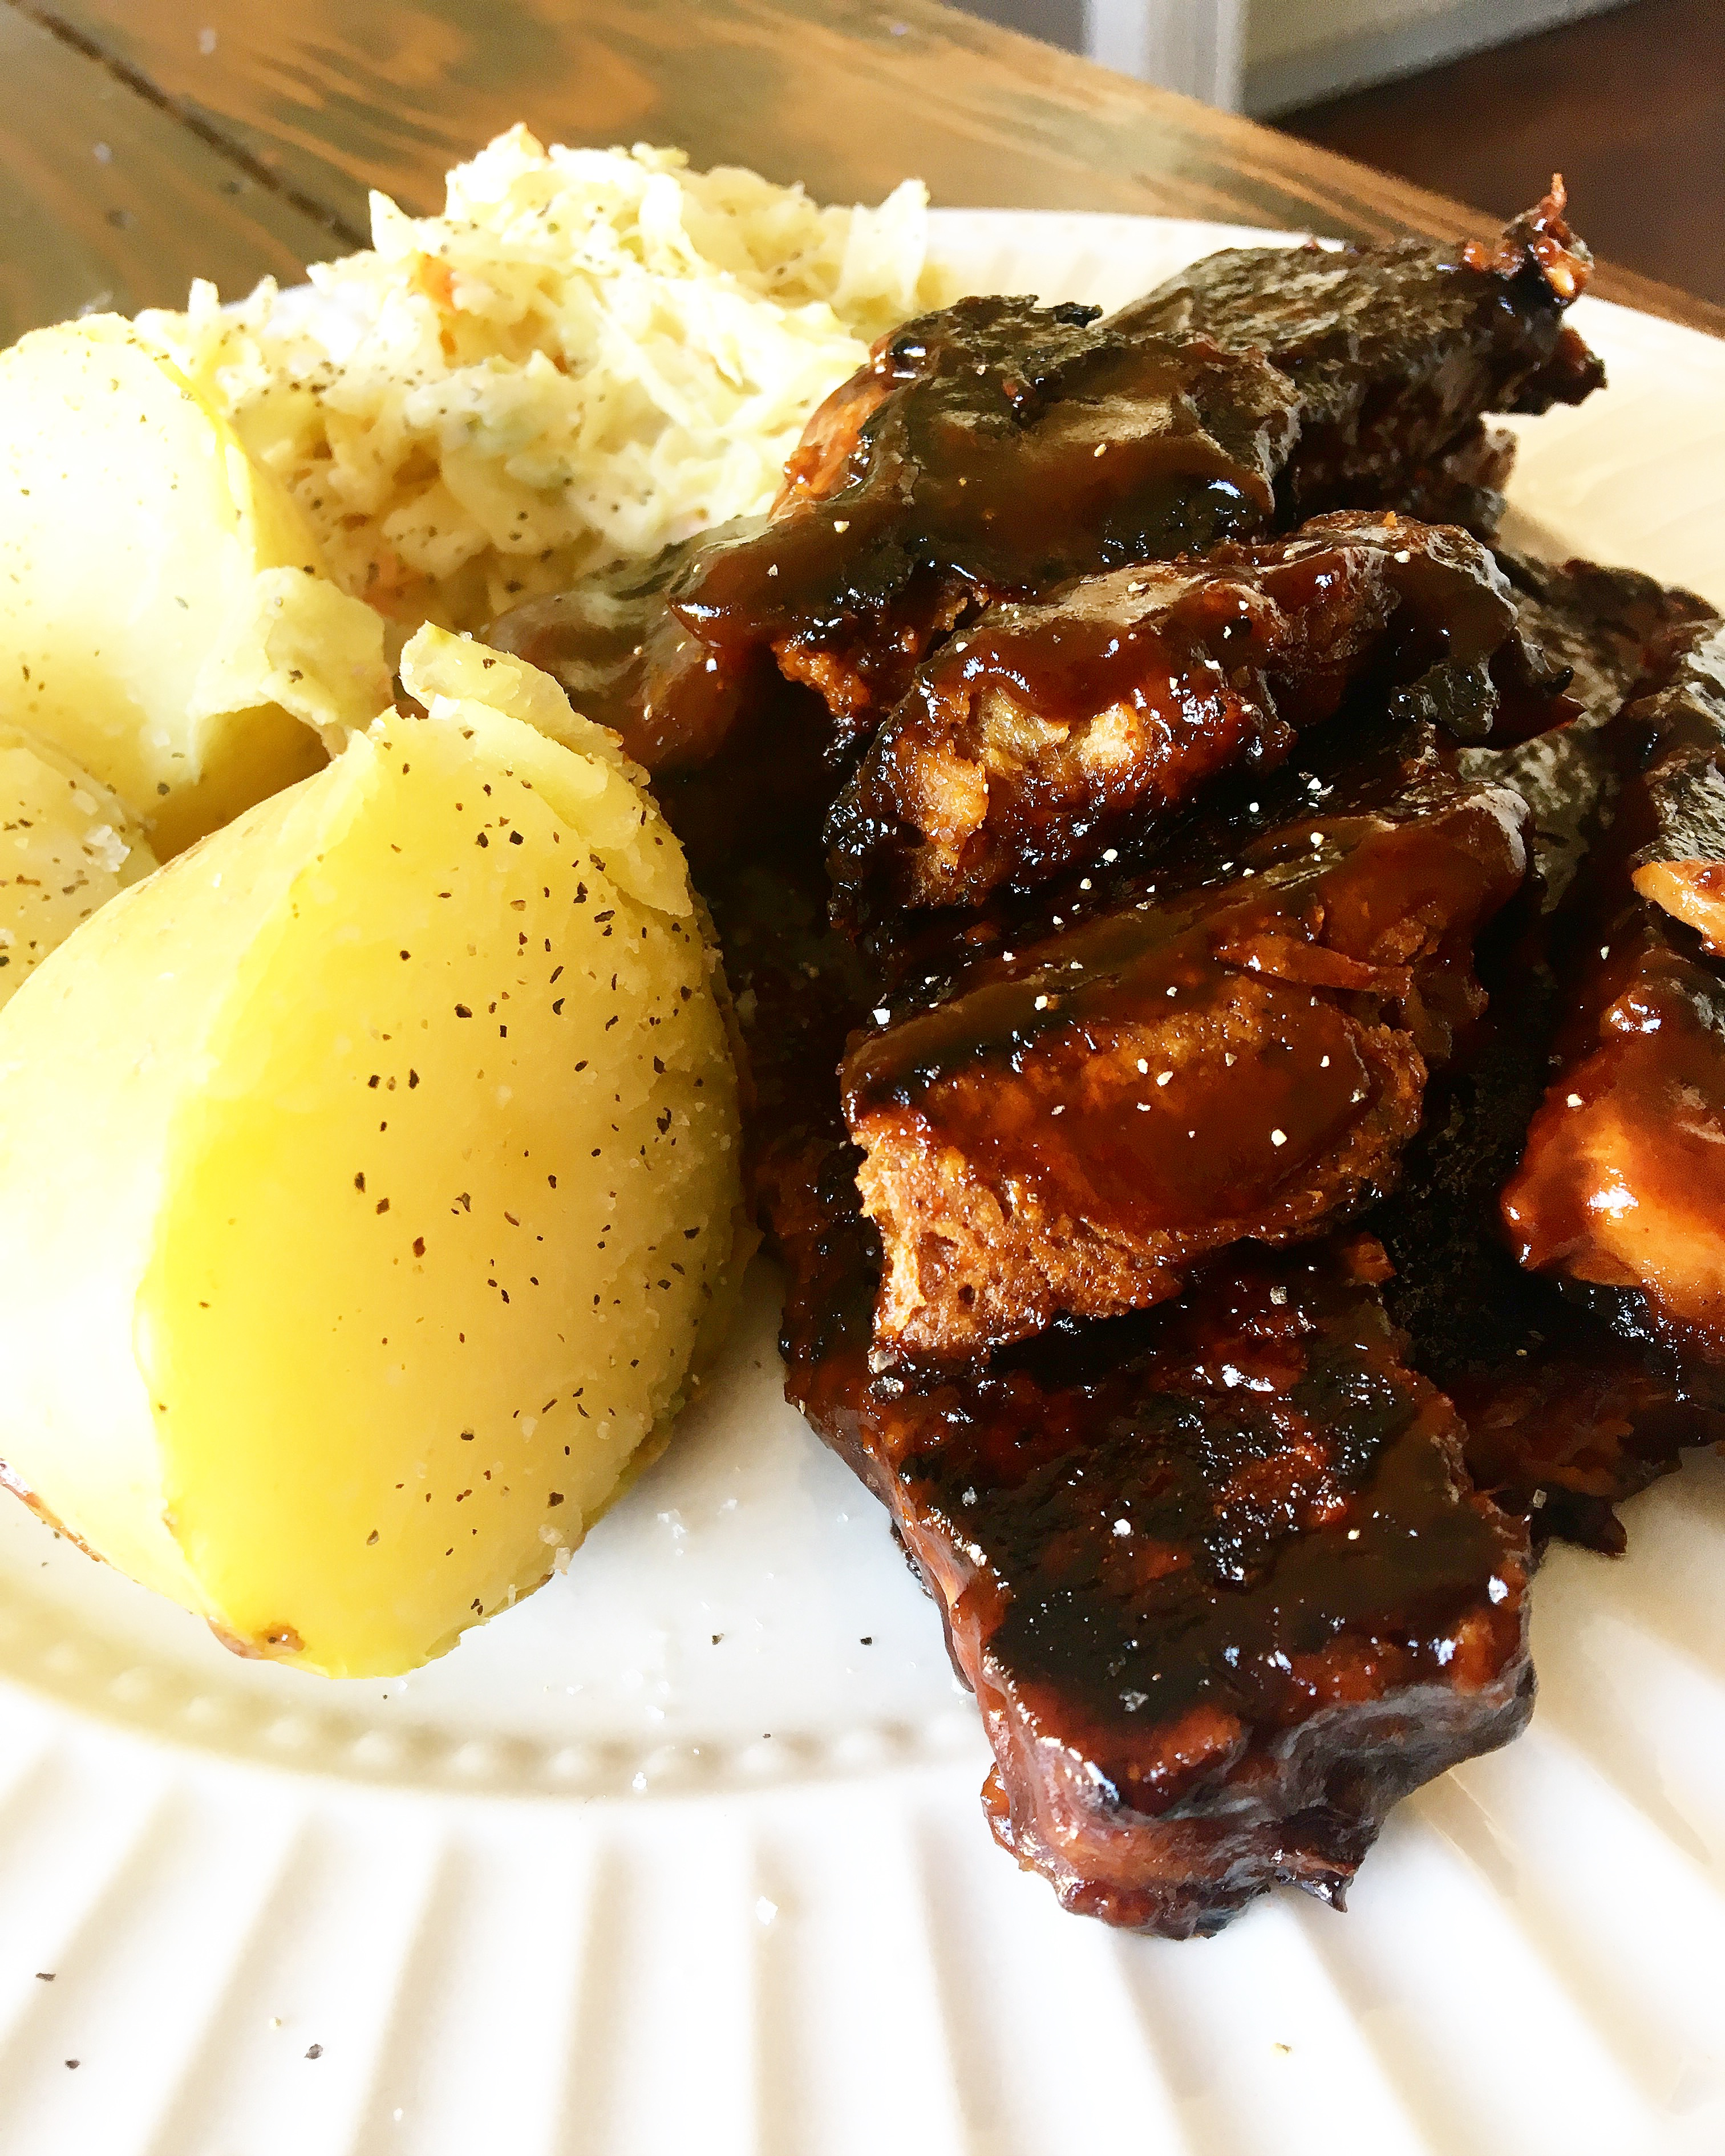 Succulent Vegan Ribs from Nick's Kitchen in Daly City,